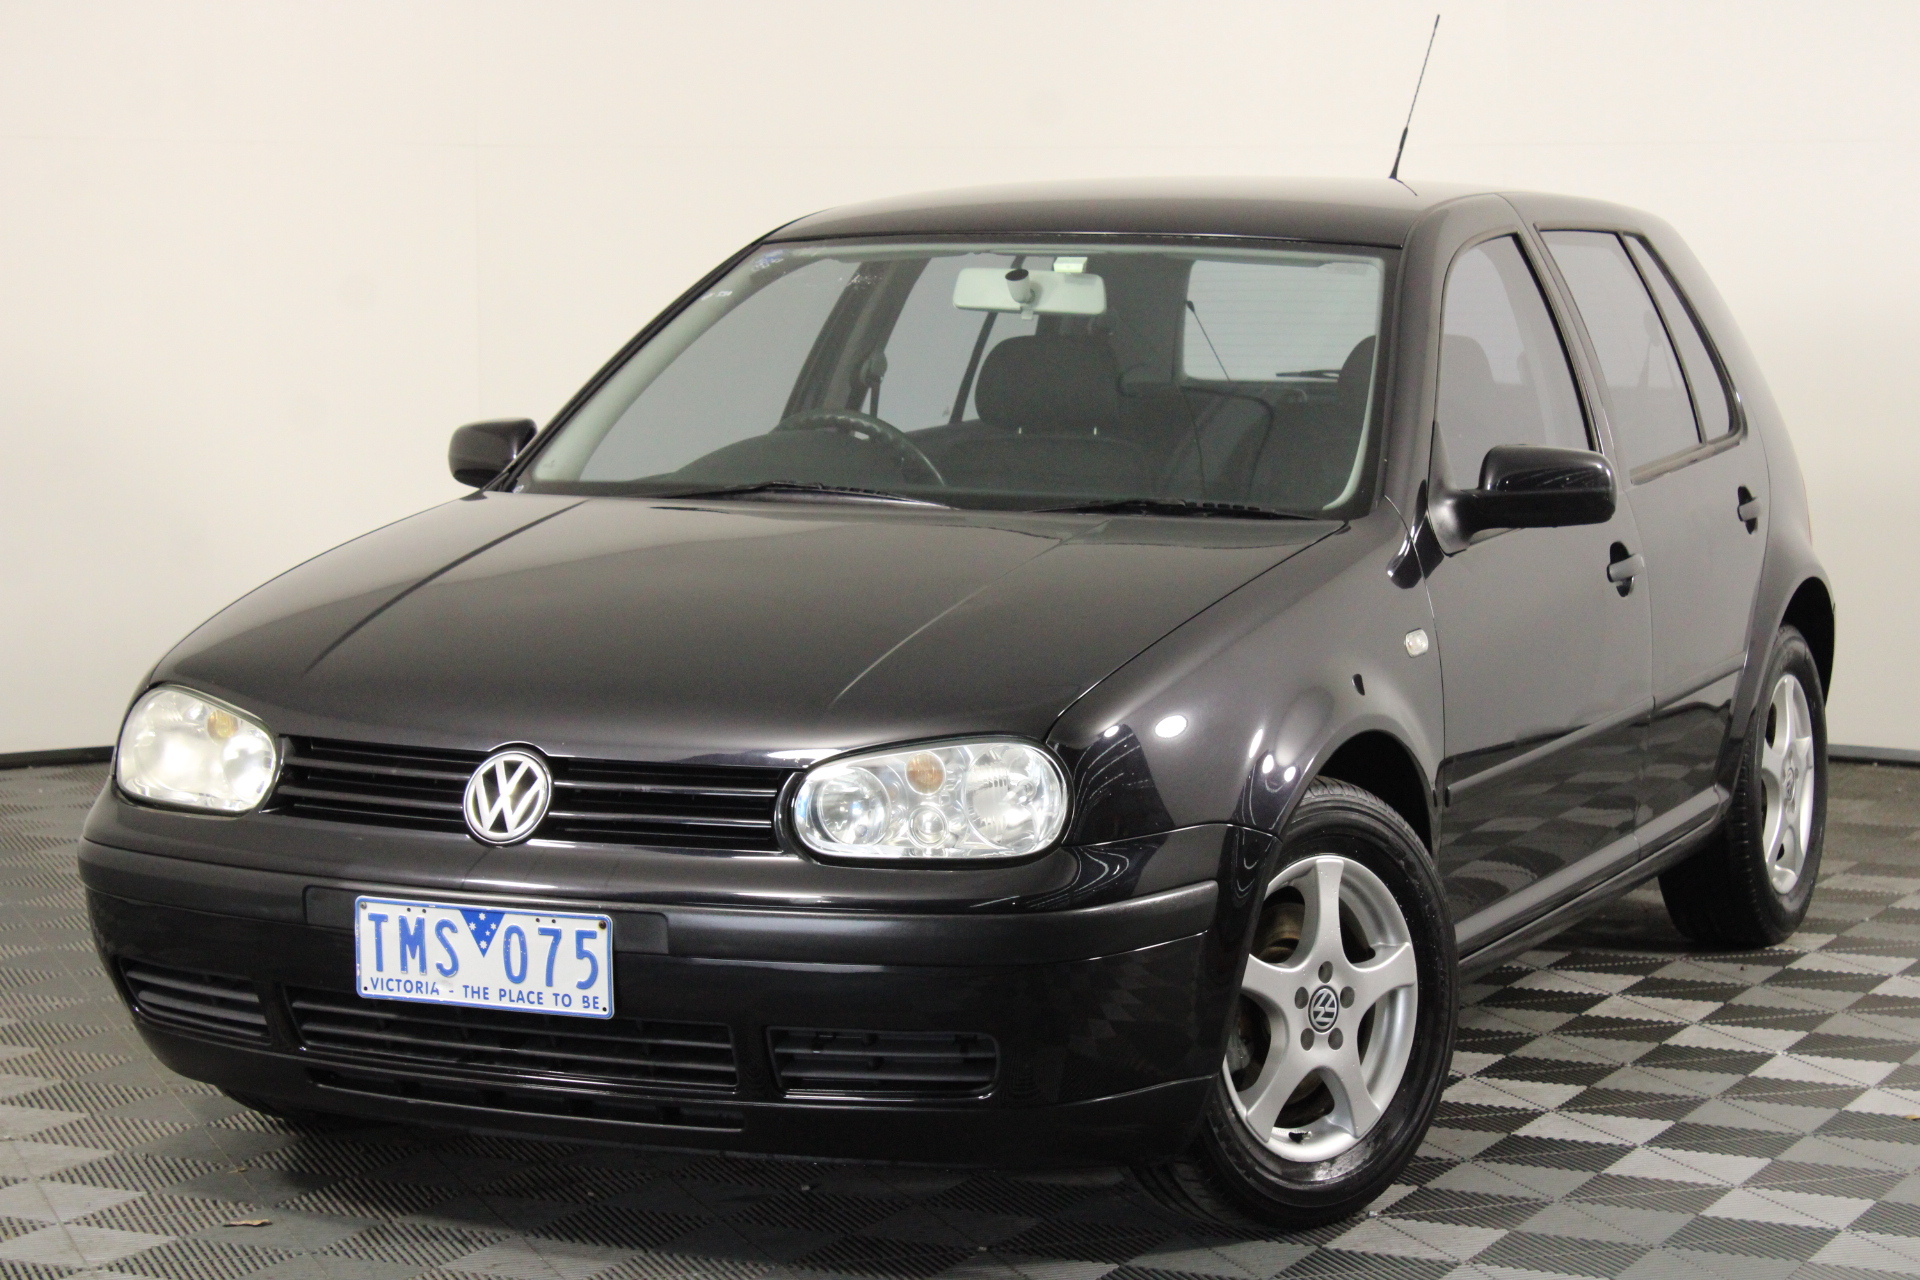 2002 Volkswagen Golf 2.0 S A4 Automatic Hatchback